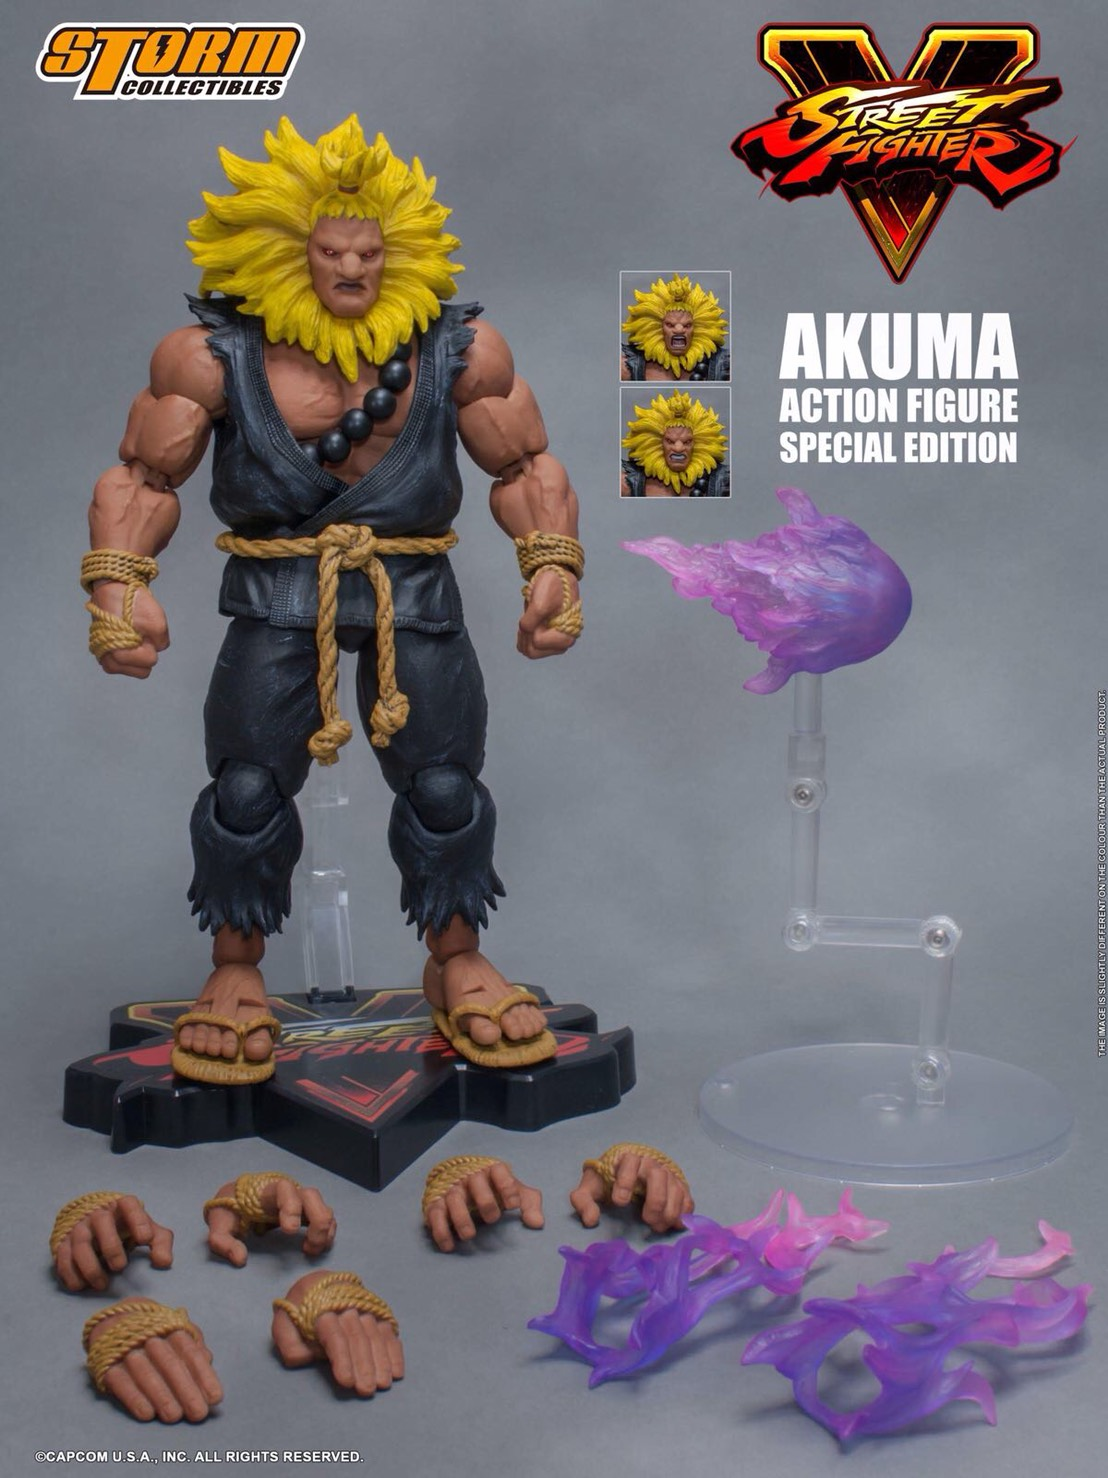 Street Fighter V Akuma Special Edition Figure by Storm Collectibles